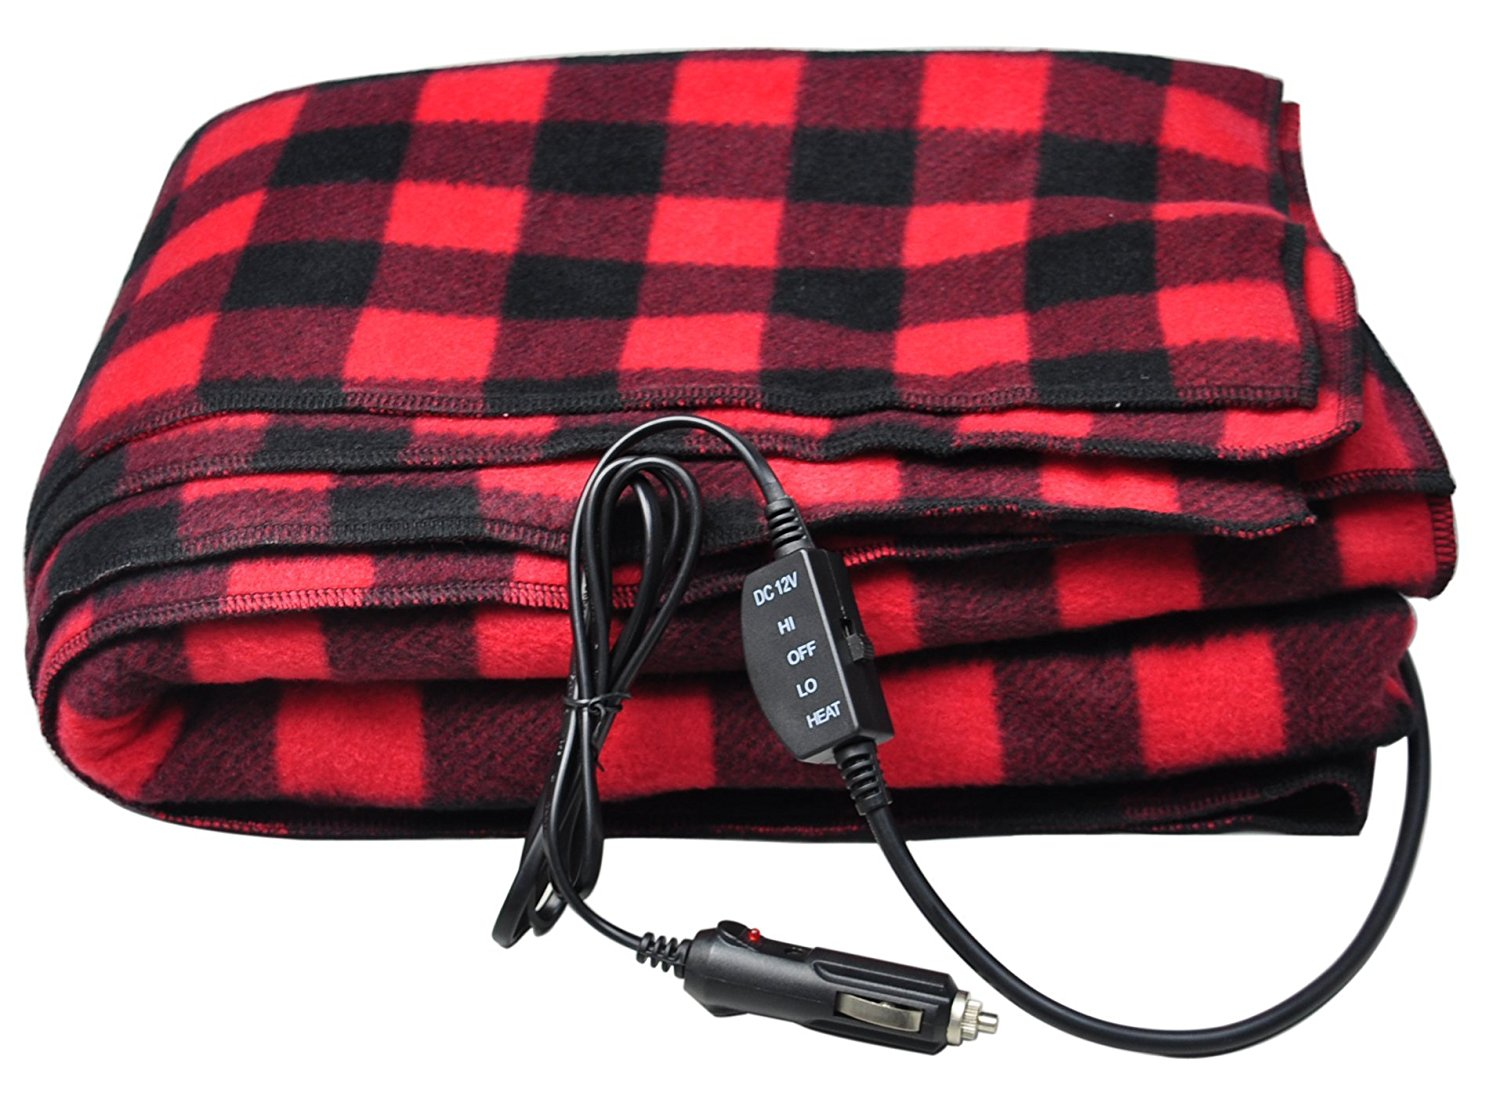 12v fleece heated electric travel blanket 1 jpg